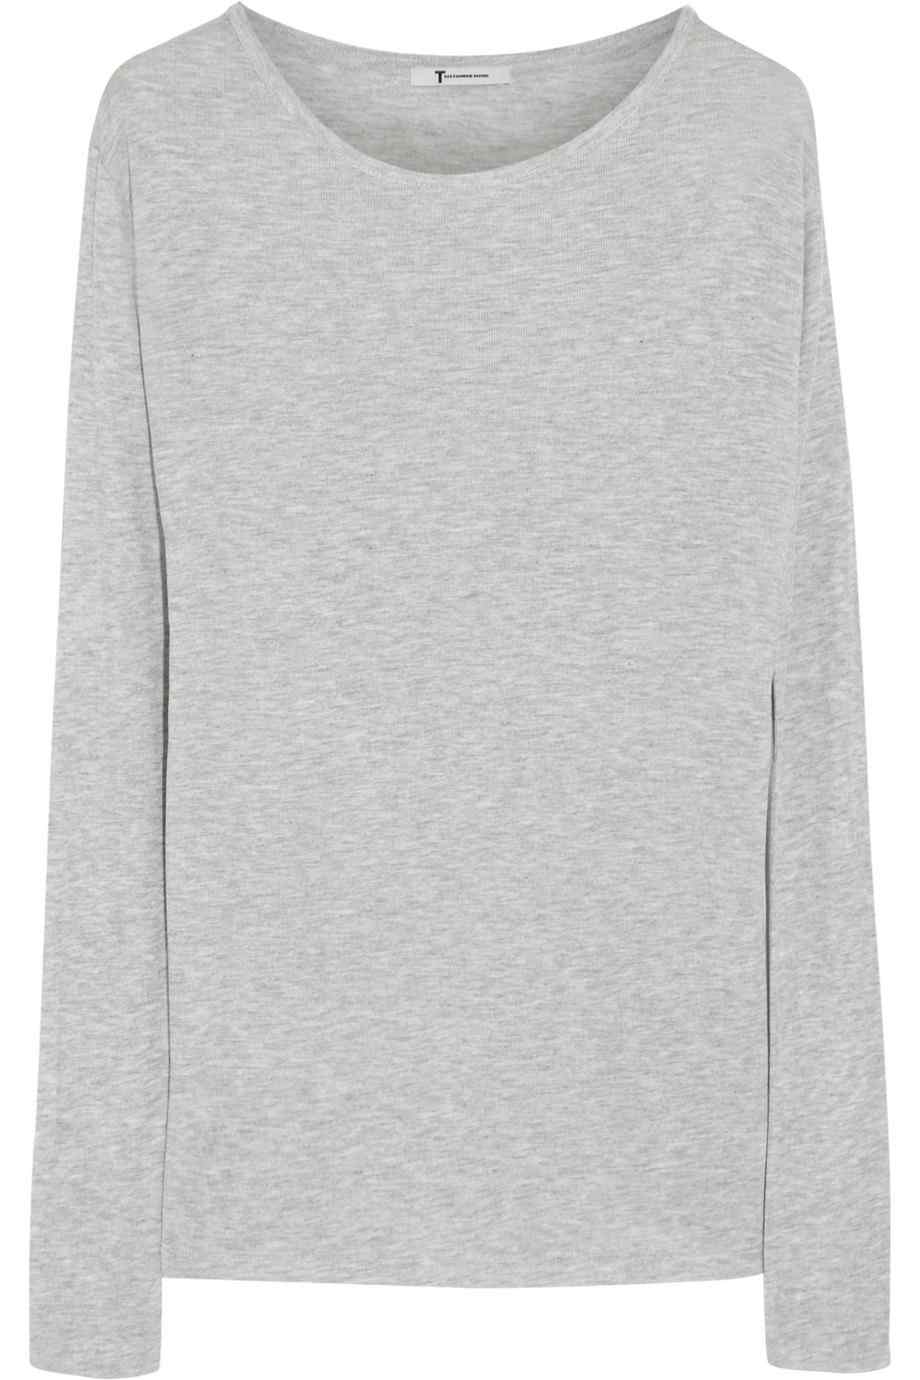 T by Alexander Wang -Pull(125 €)